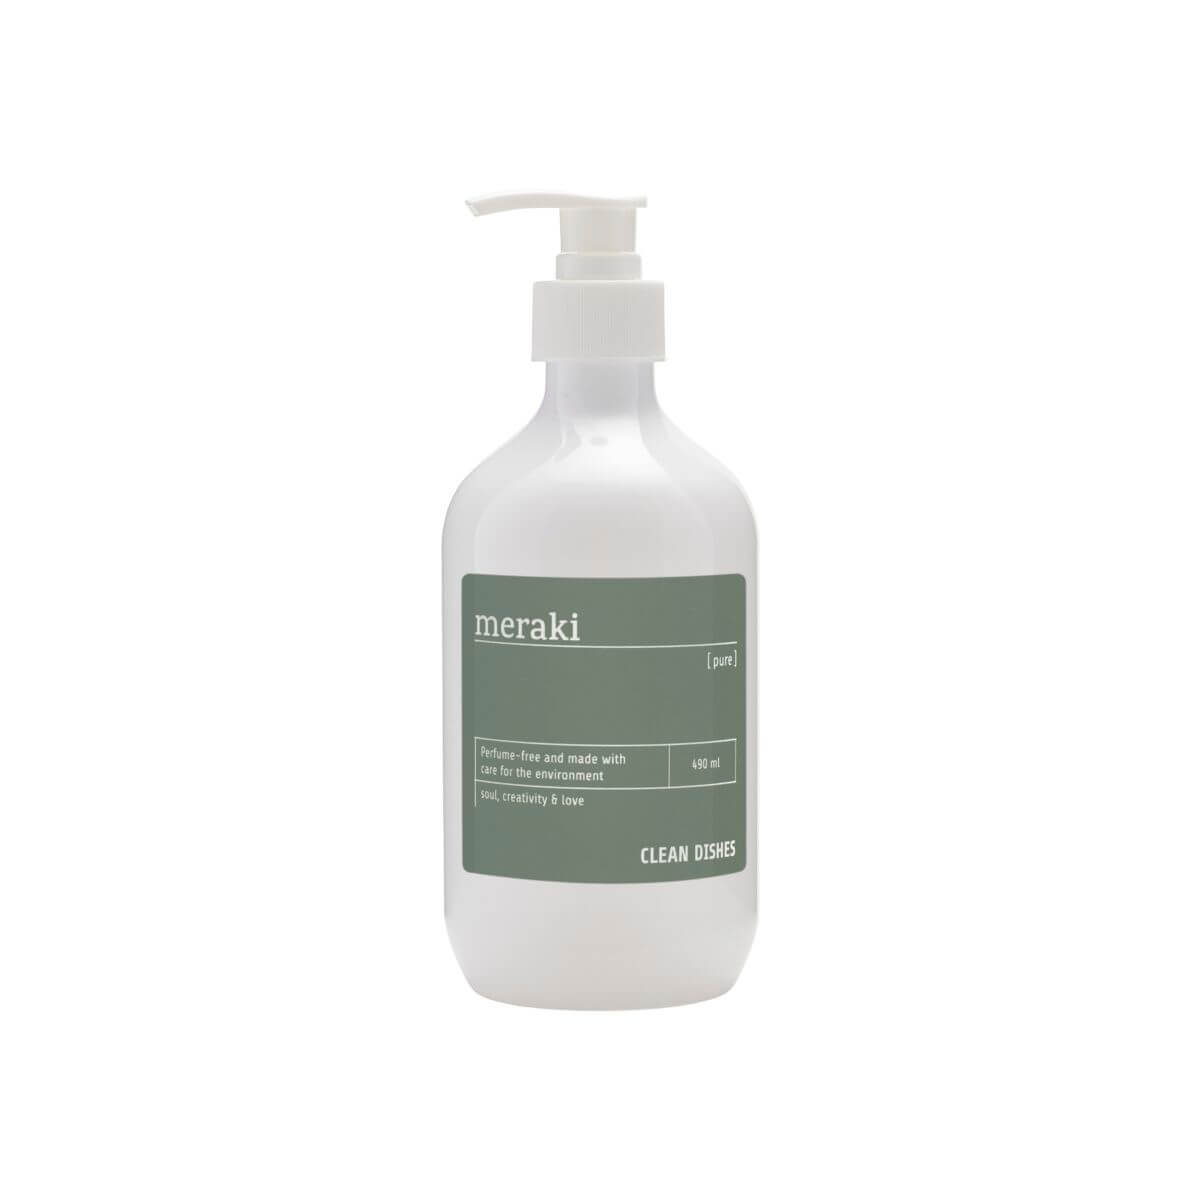 Image of   Meraki Opvaskemiddel, Pure, 490 ml/16.5 fl.oz